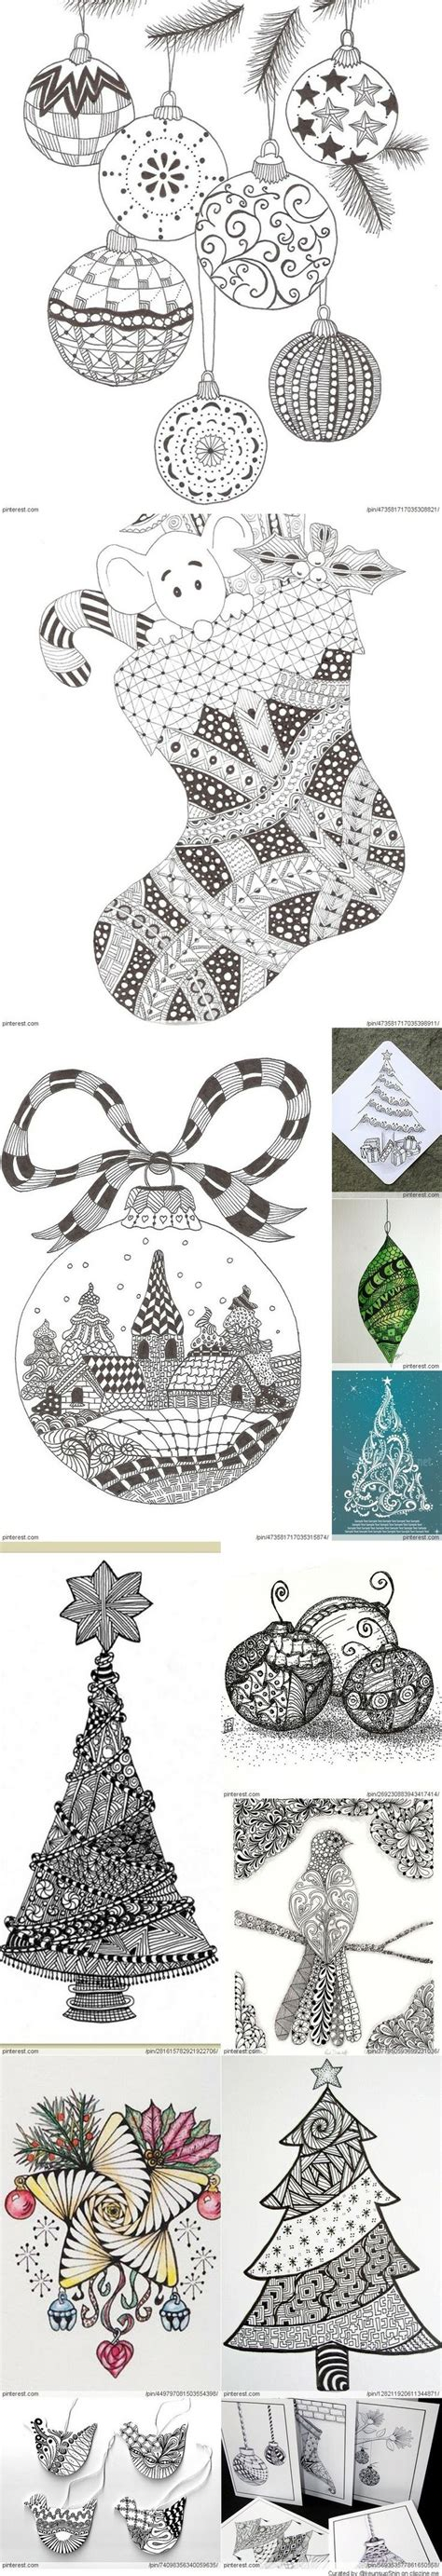 christmas zentangle pattern 17 best images about holiday tangles on pinterest trees